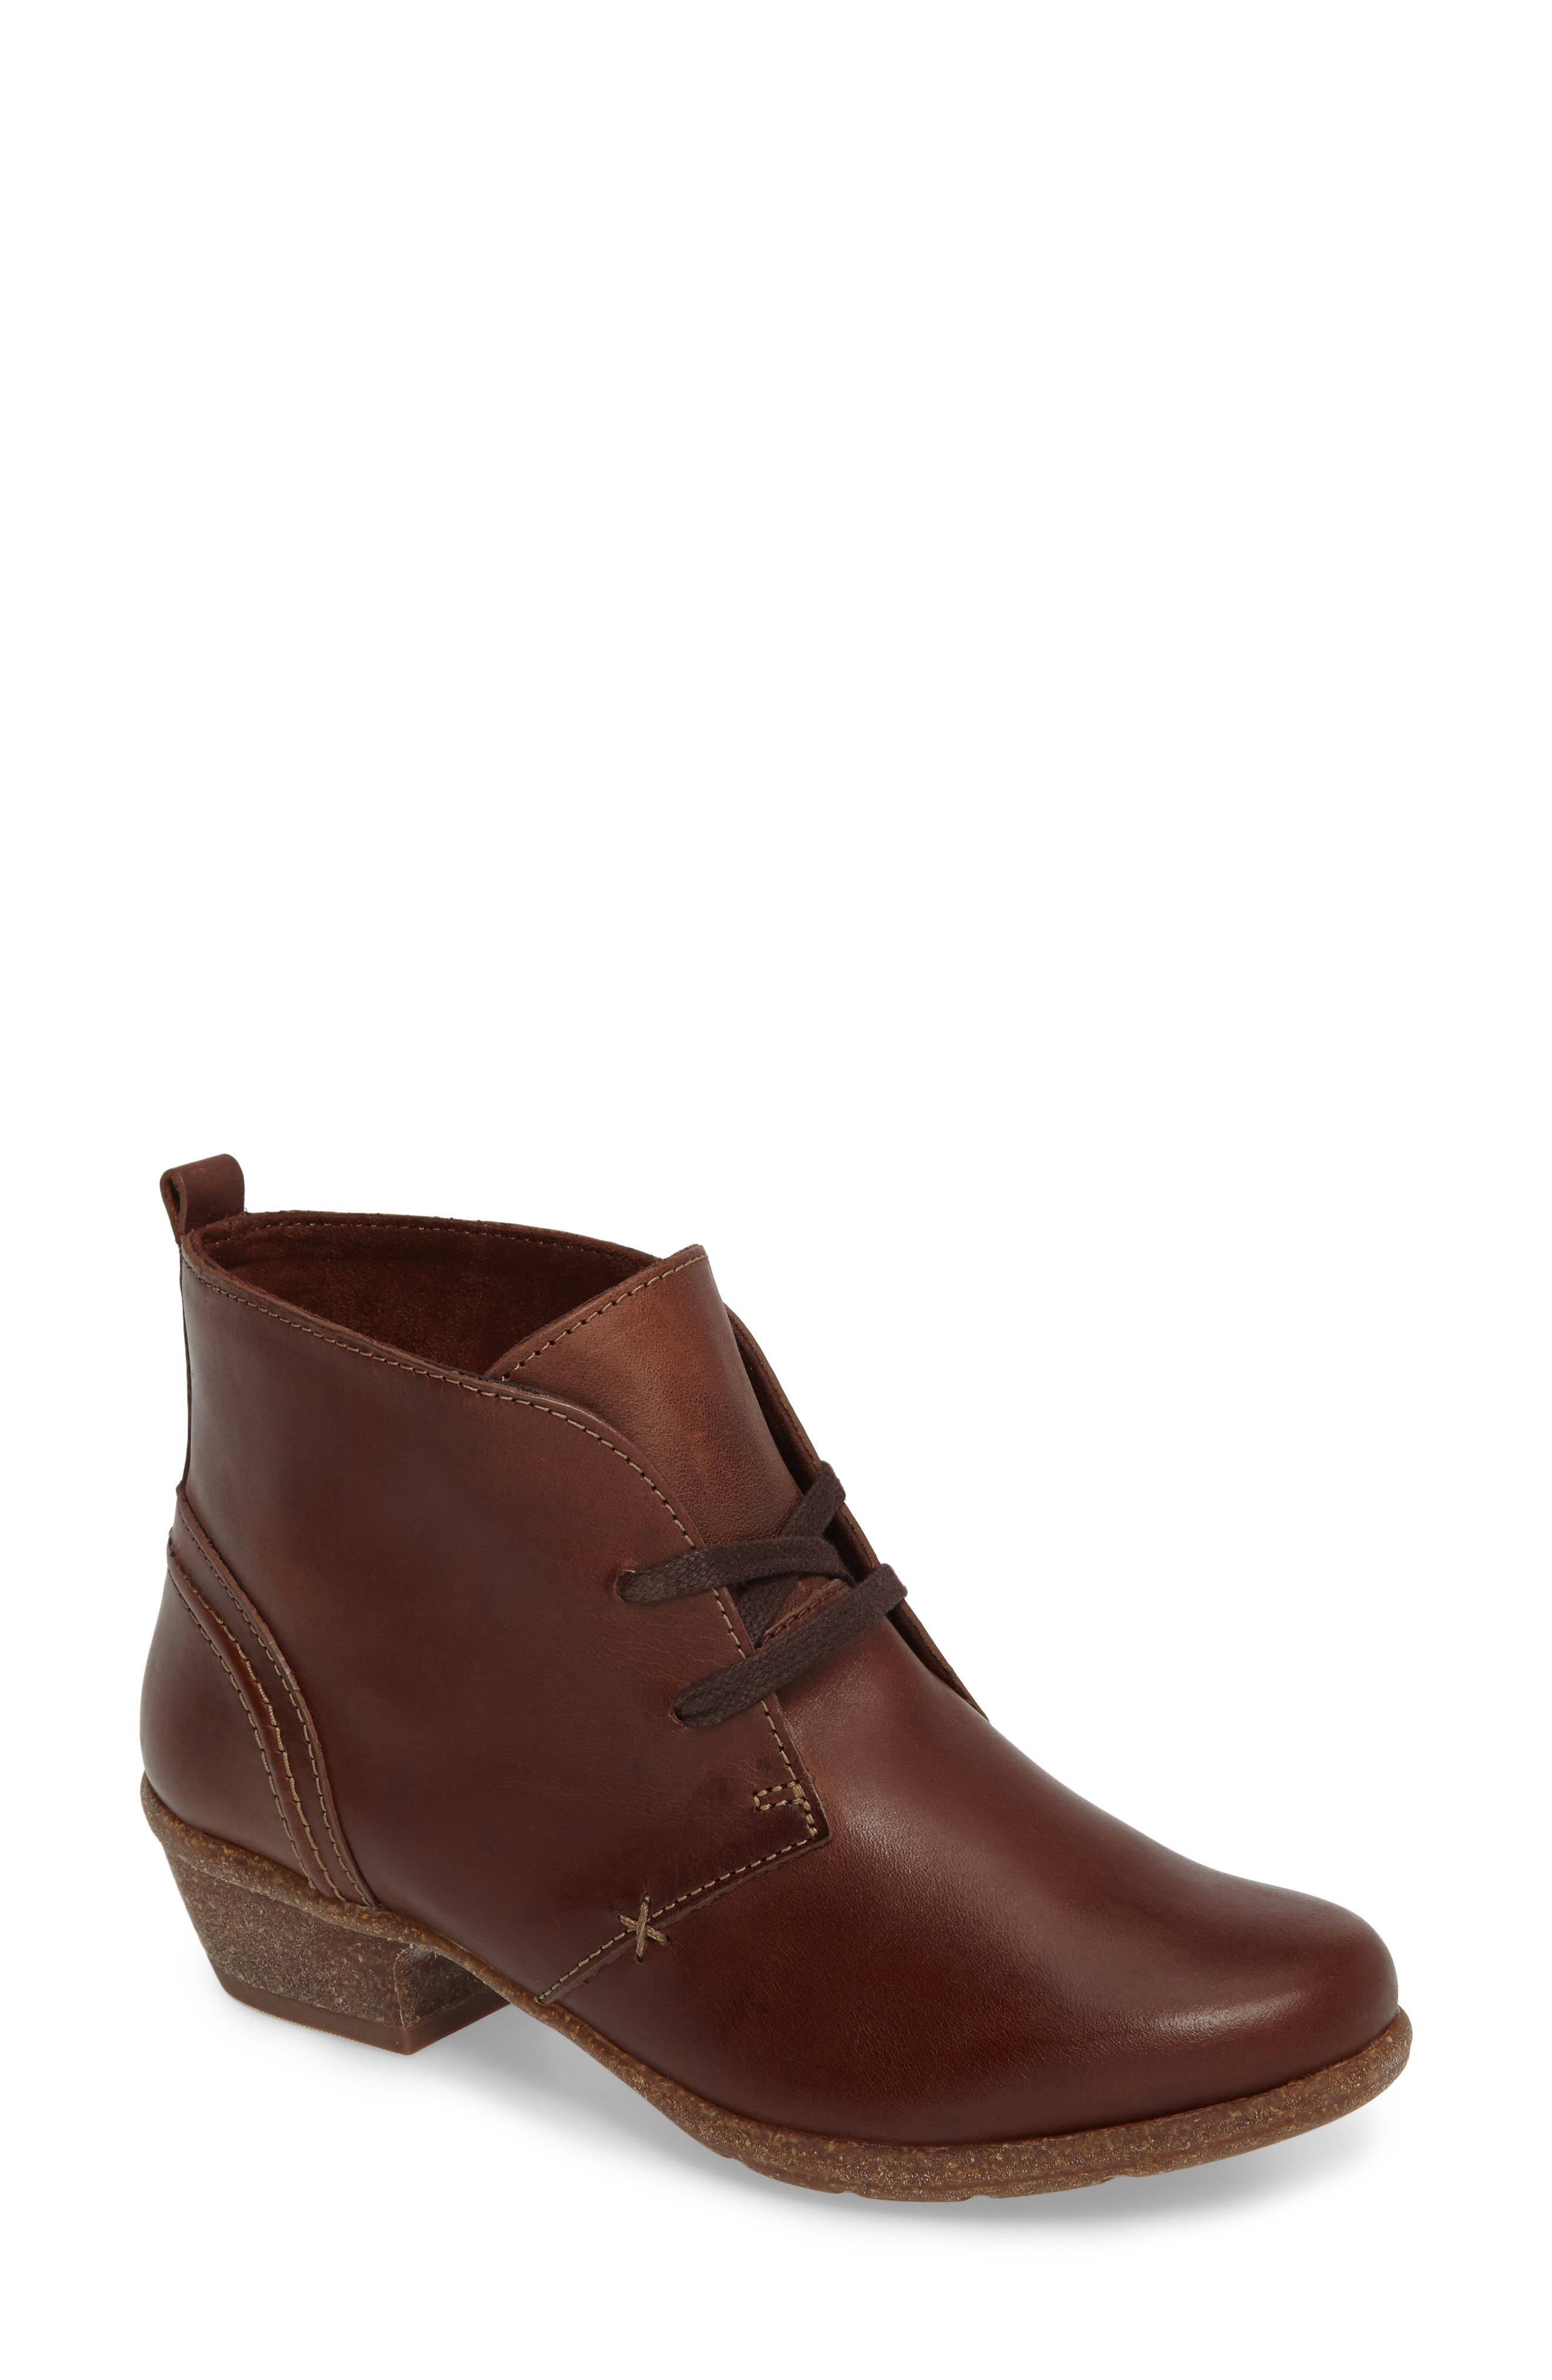 Wilrose Sage Bootie,                             Main thumbnail 1, color,                             Brown Nubuck Leather